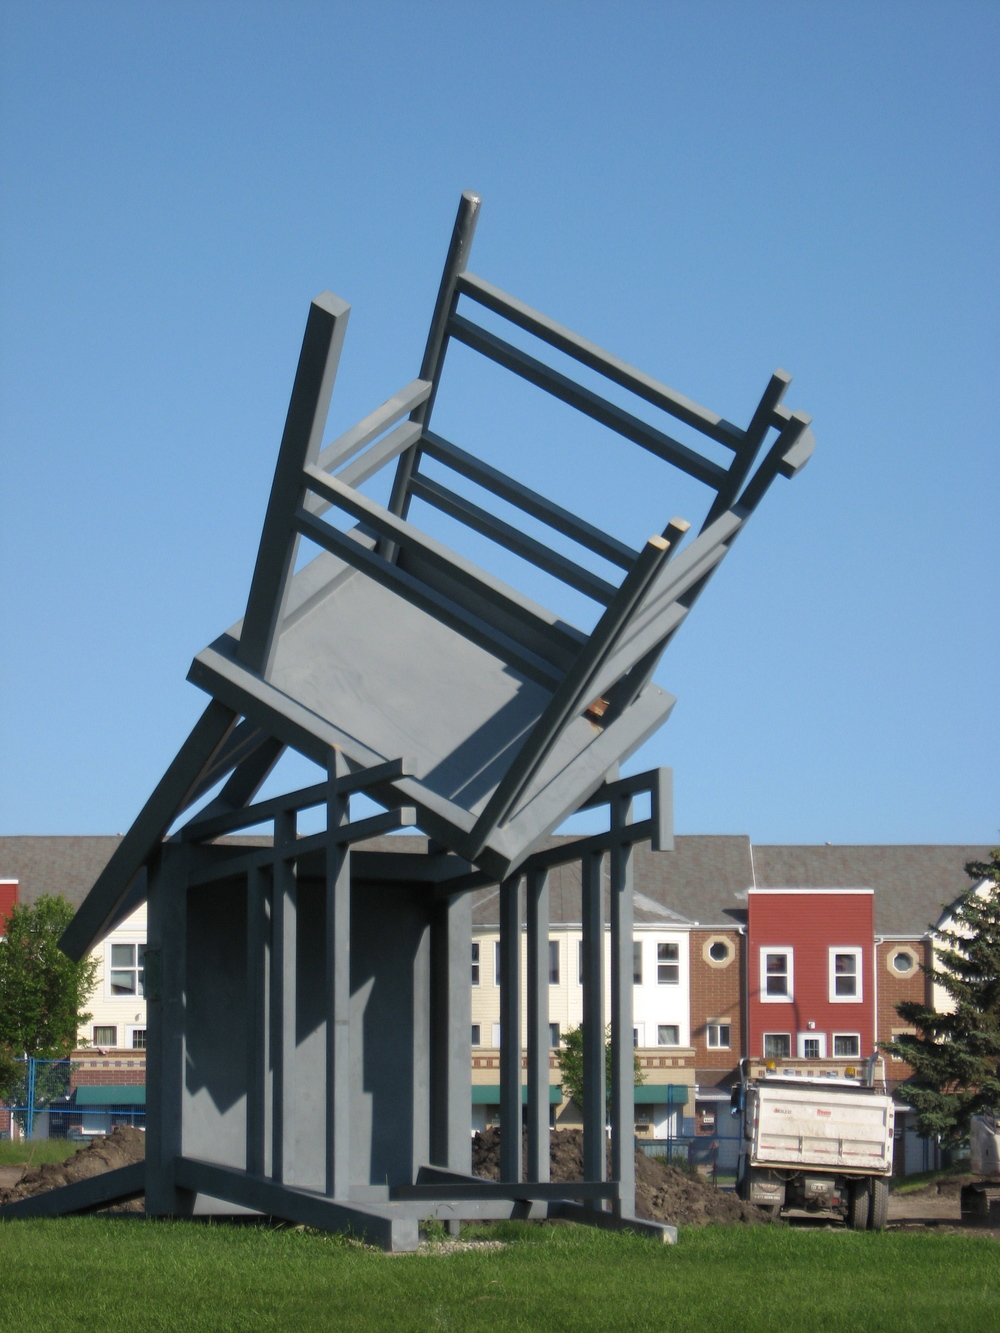 Homage, 6.6 meter high, Mount Royal University campus, 1989